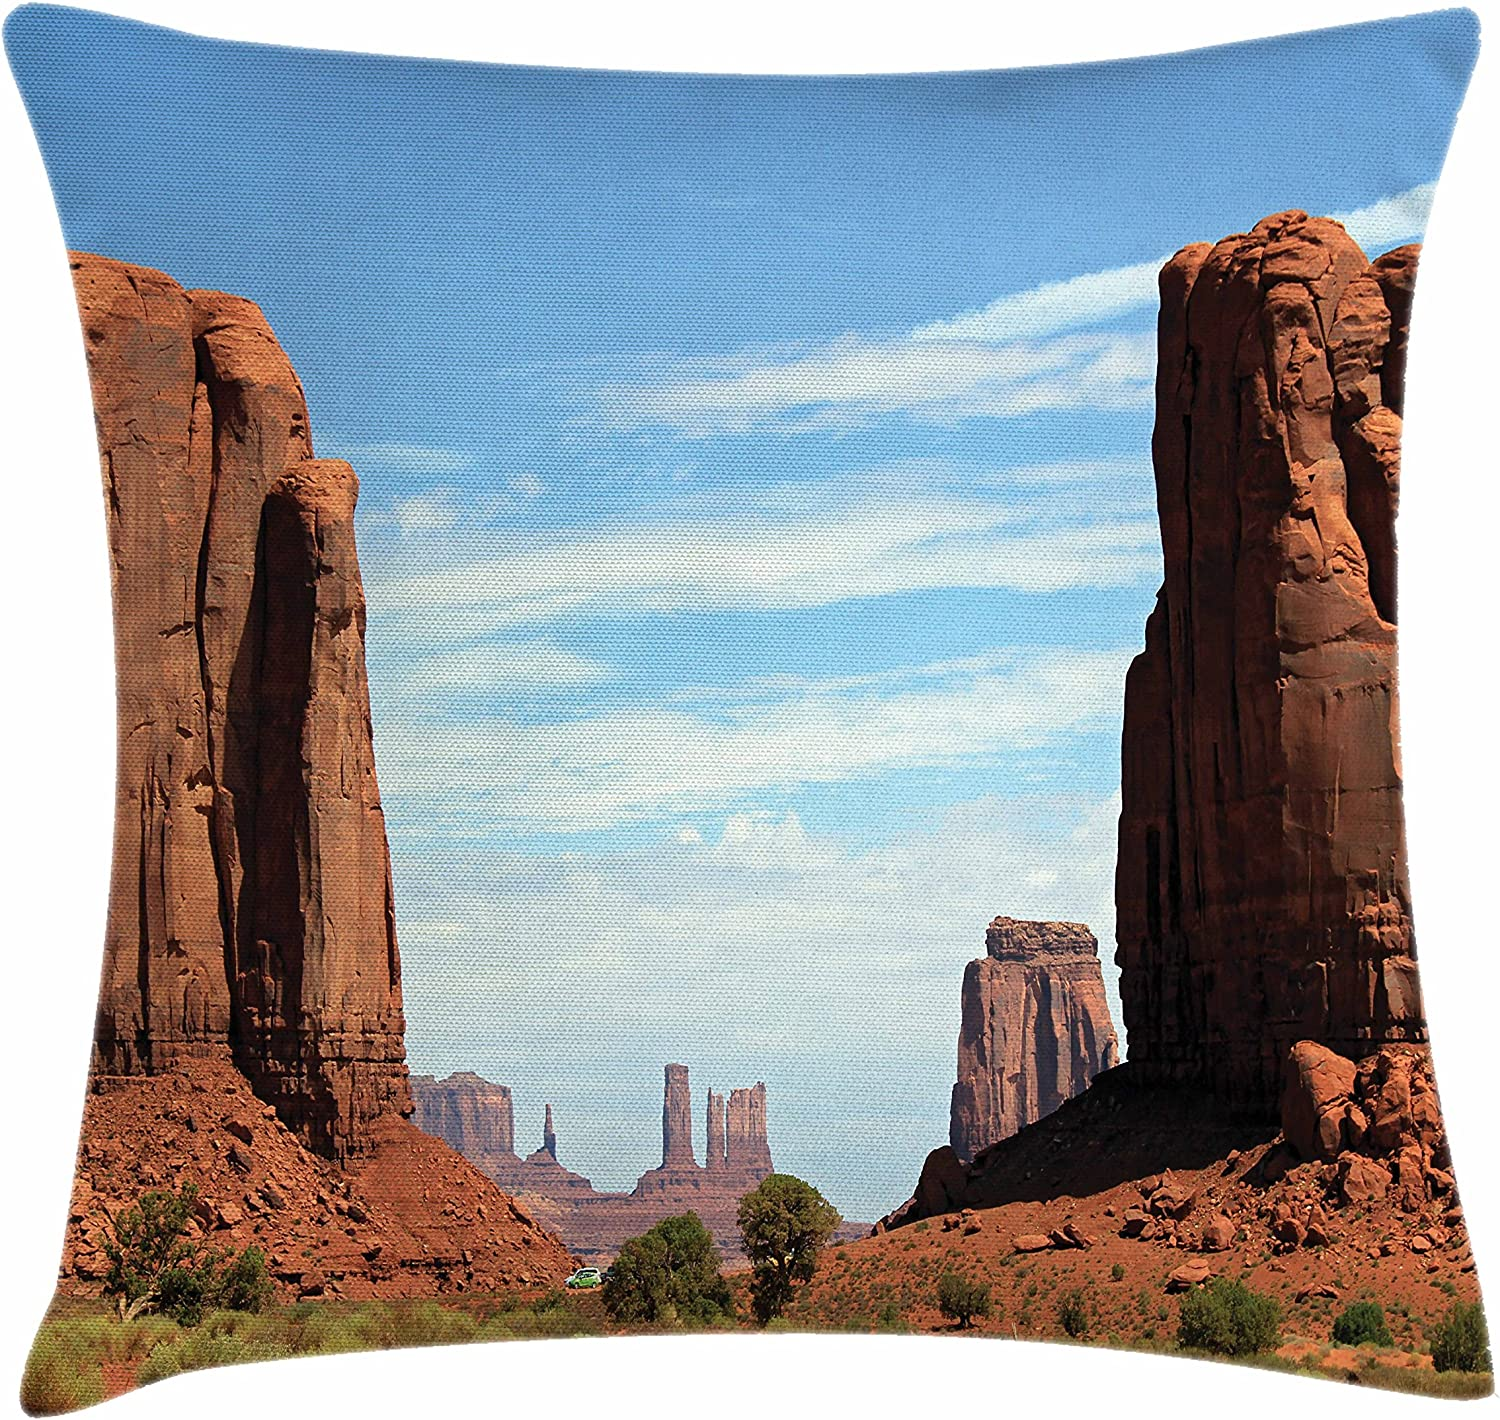 Lunarable American Throw Pillow Cushion Cover United States Utah Colorado Plato The Mitten Butte Monument Valley Rocks Canyon Scenery Decorative Square Accent Pillow Case 26 X 26 Inches Brown Home